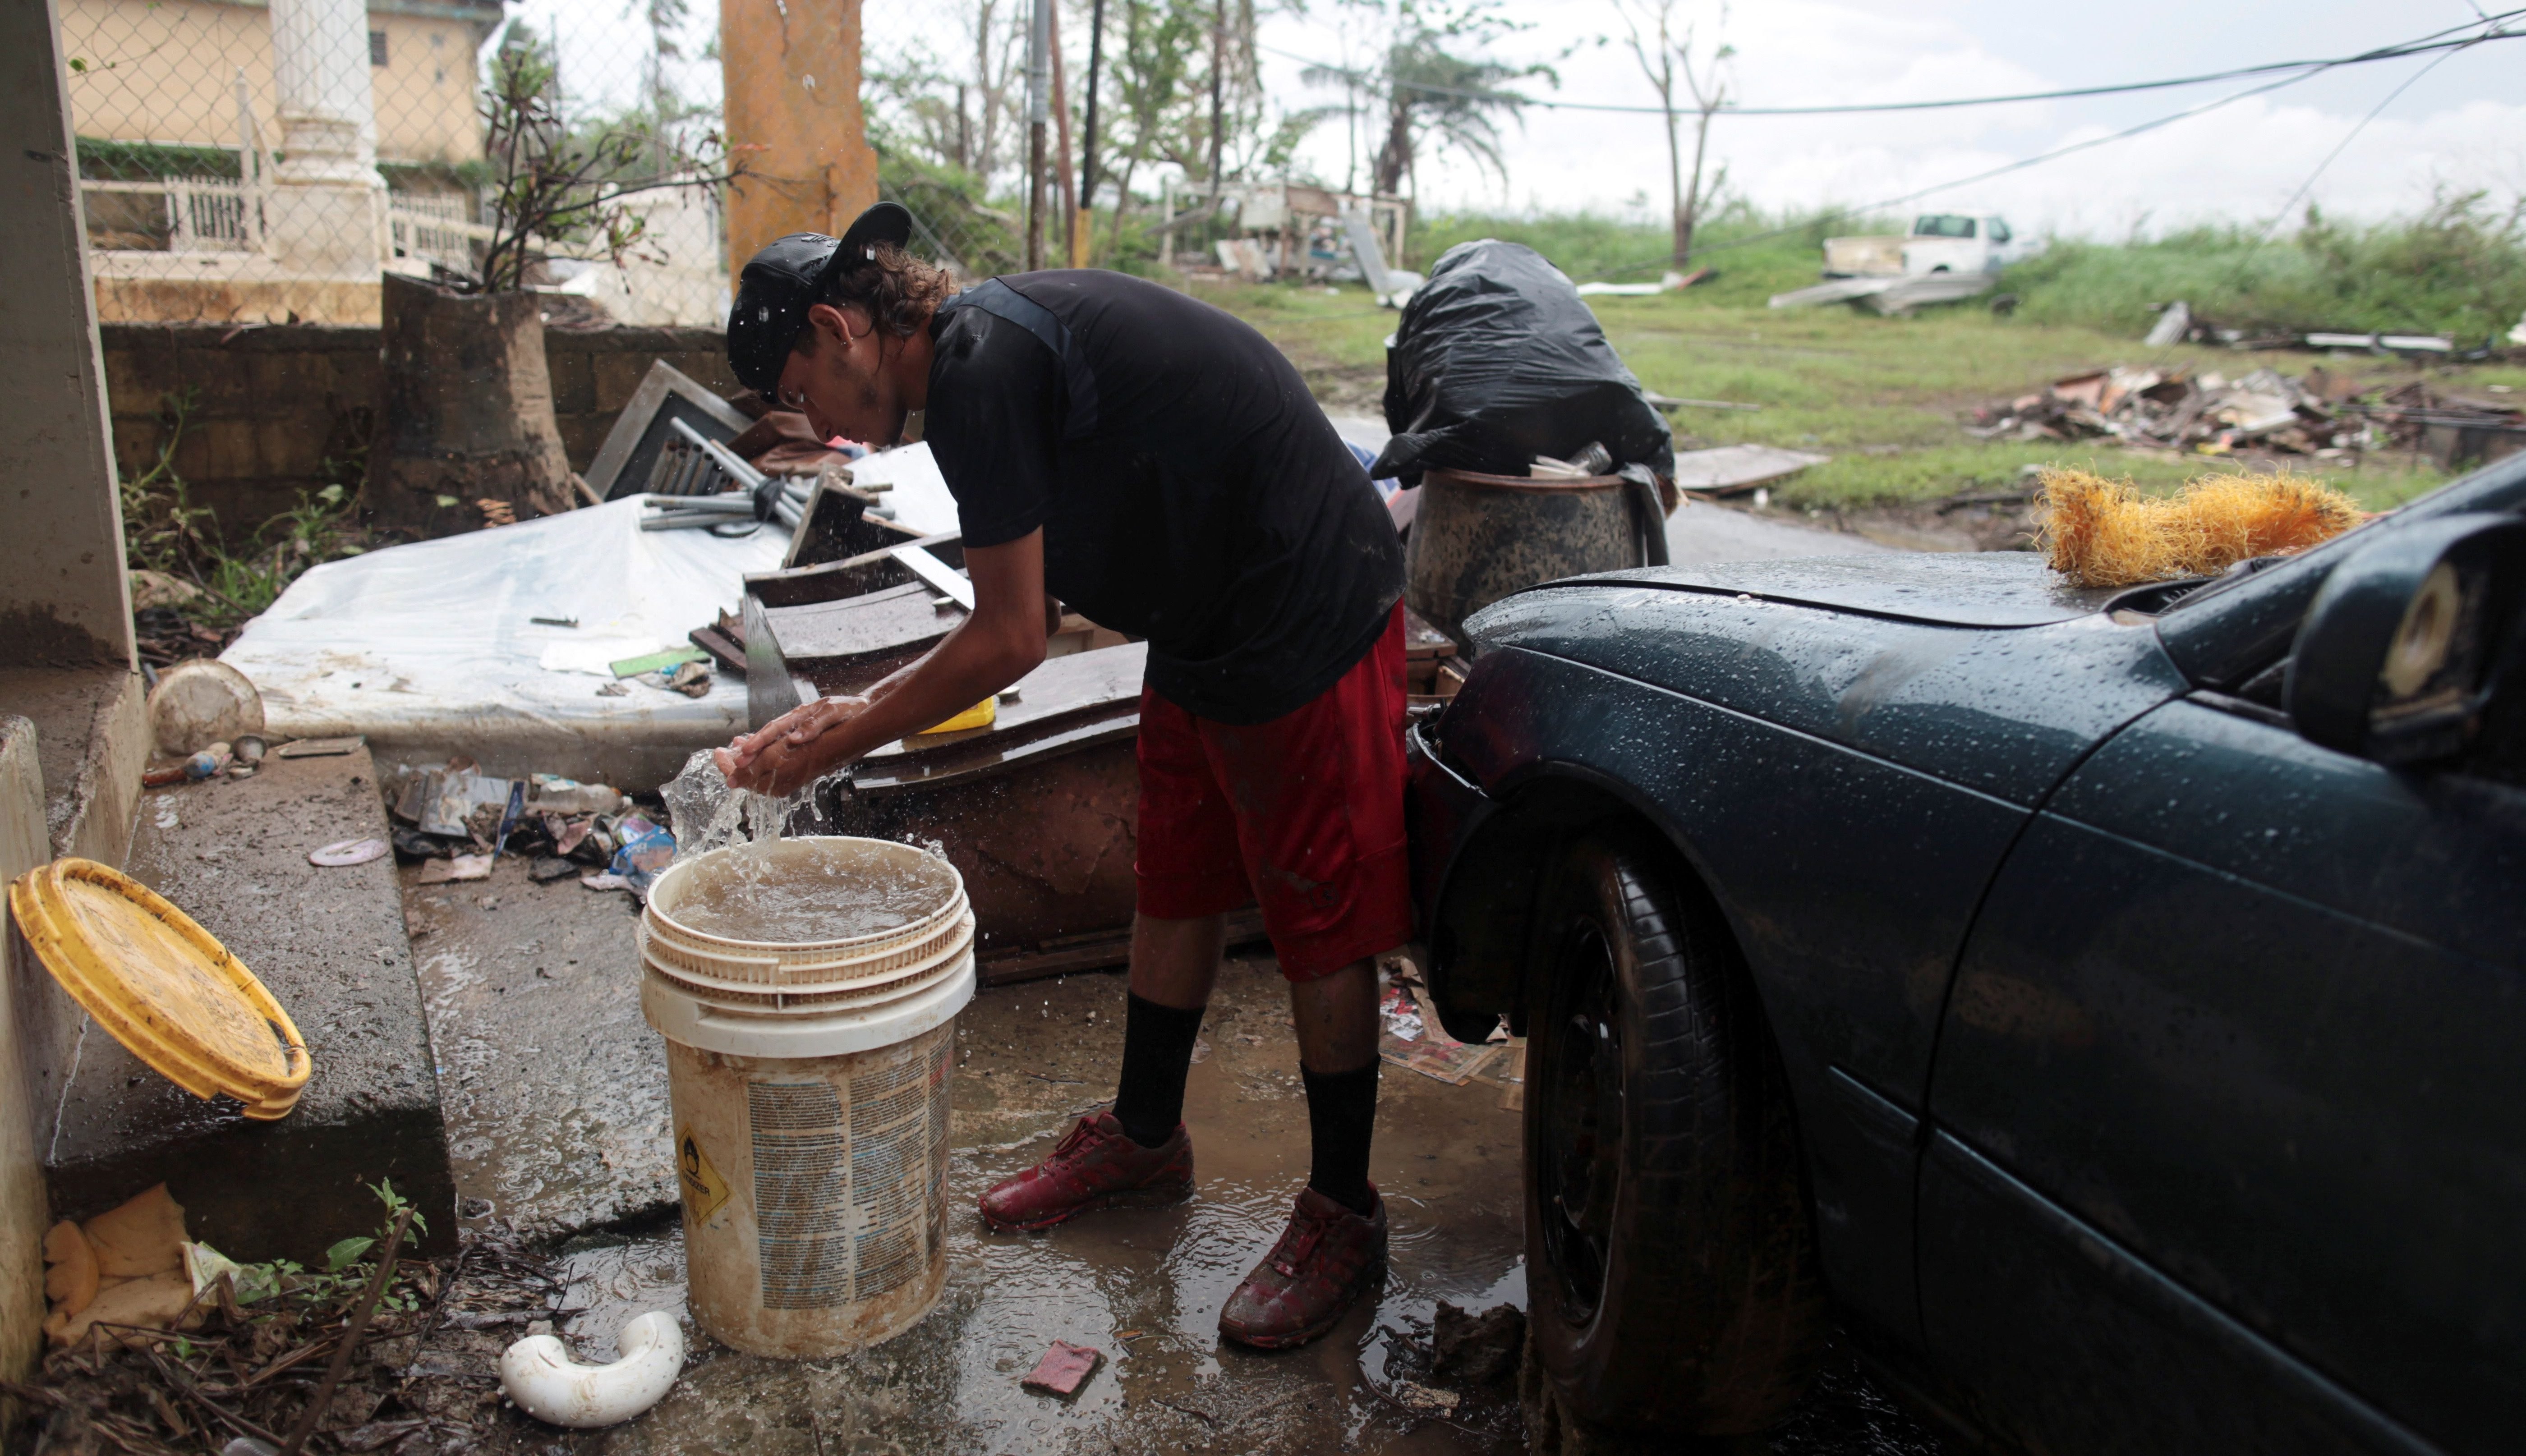 A man washes his hands with rainwater collected in a bucket, after the island was hit by Hurricane Maria, in Toa Baja, Puerto Rico October 16, 2017. REUTERS/Alvin Baez - RC1850864380